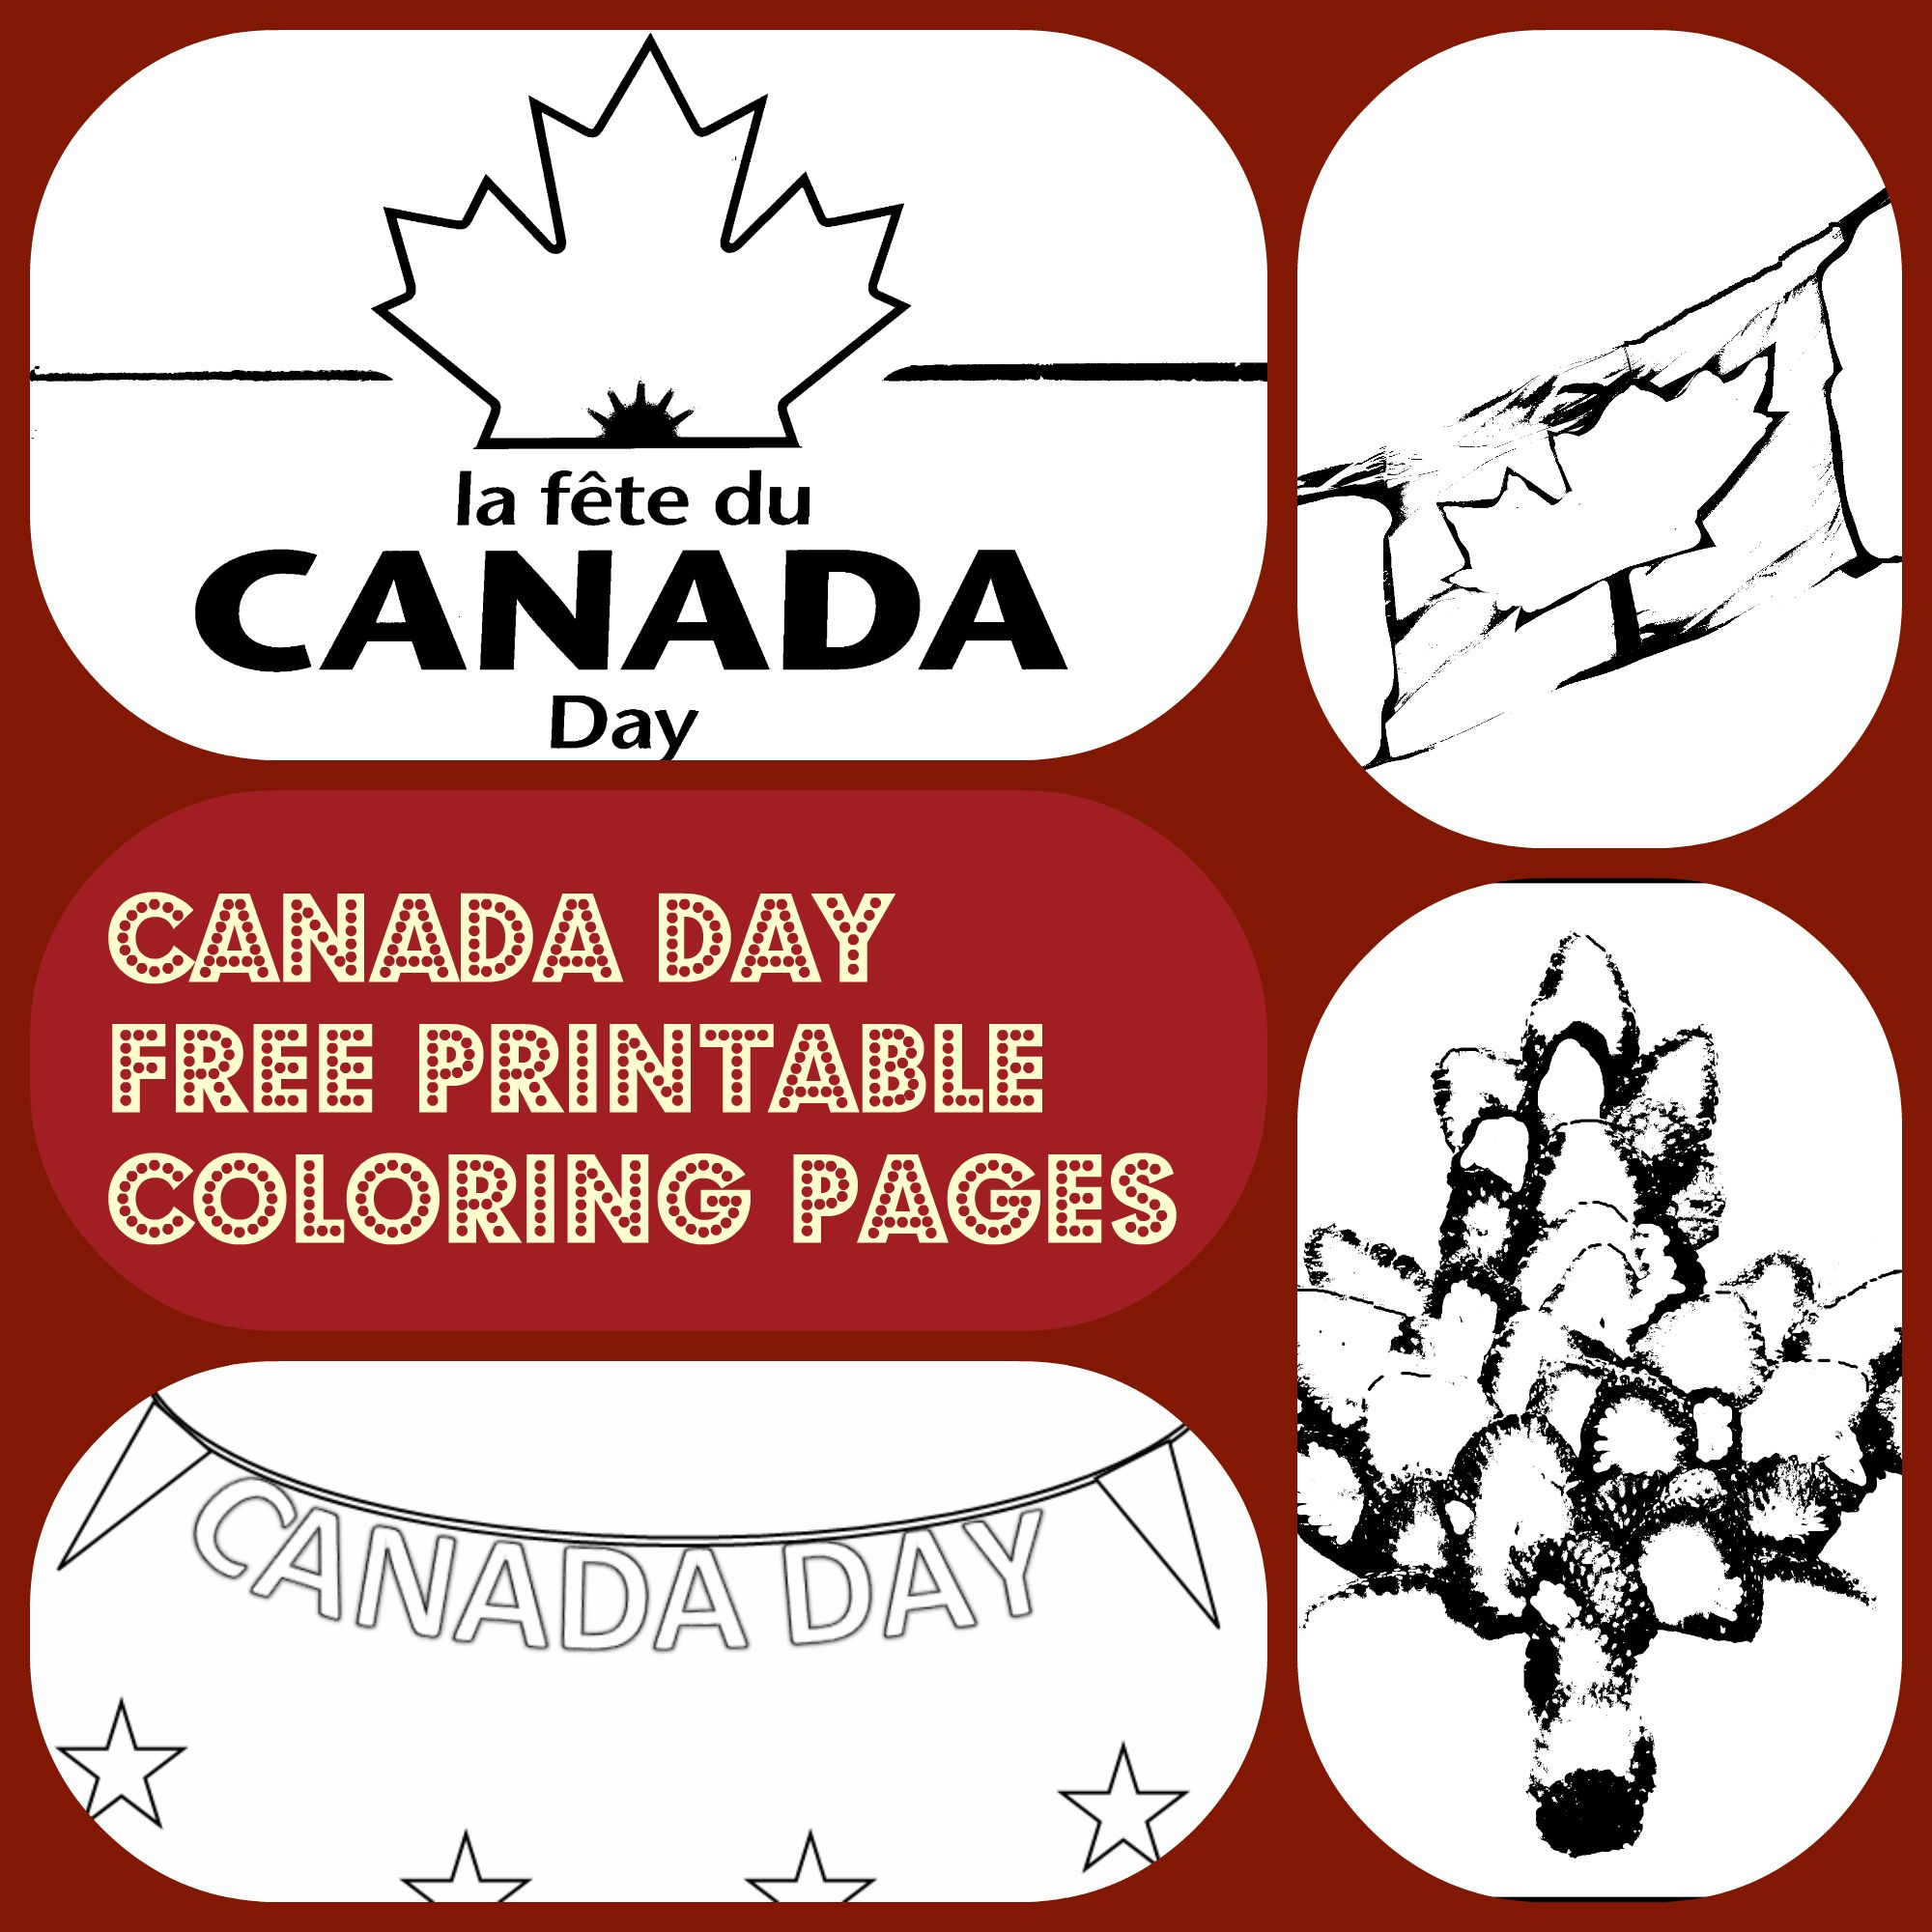 4 Canada Day free printable coloring pages | Canada: Thinking Day ...